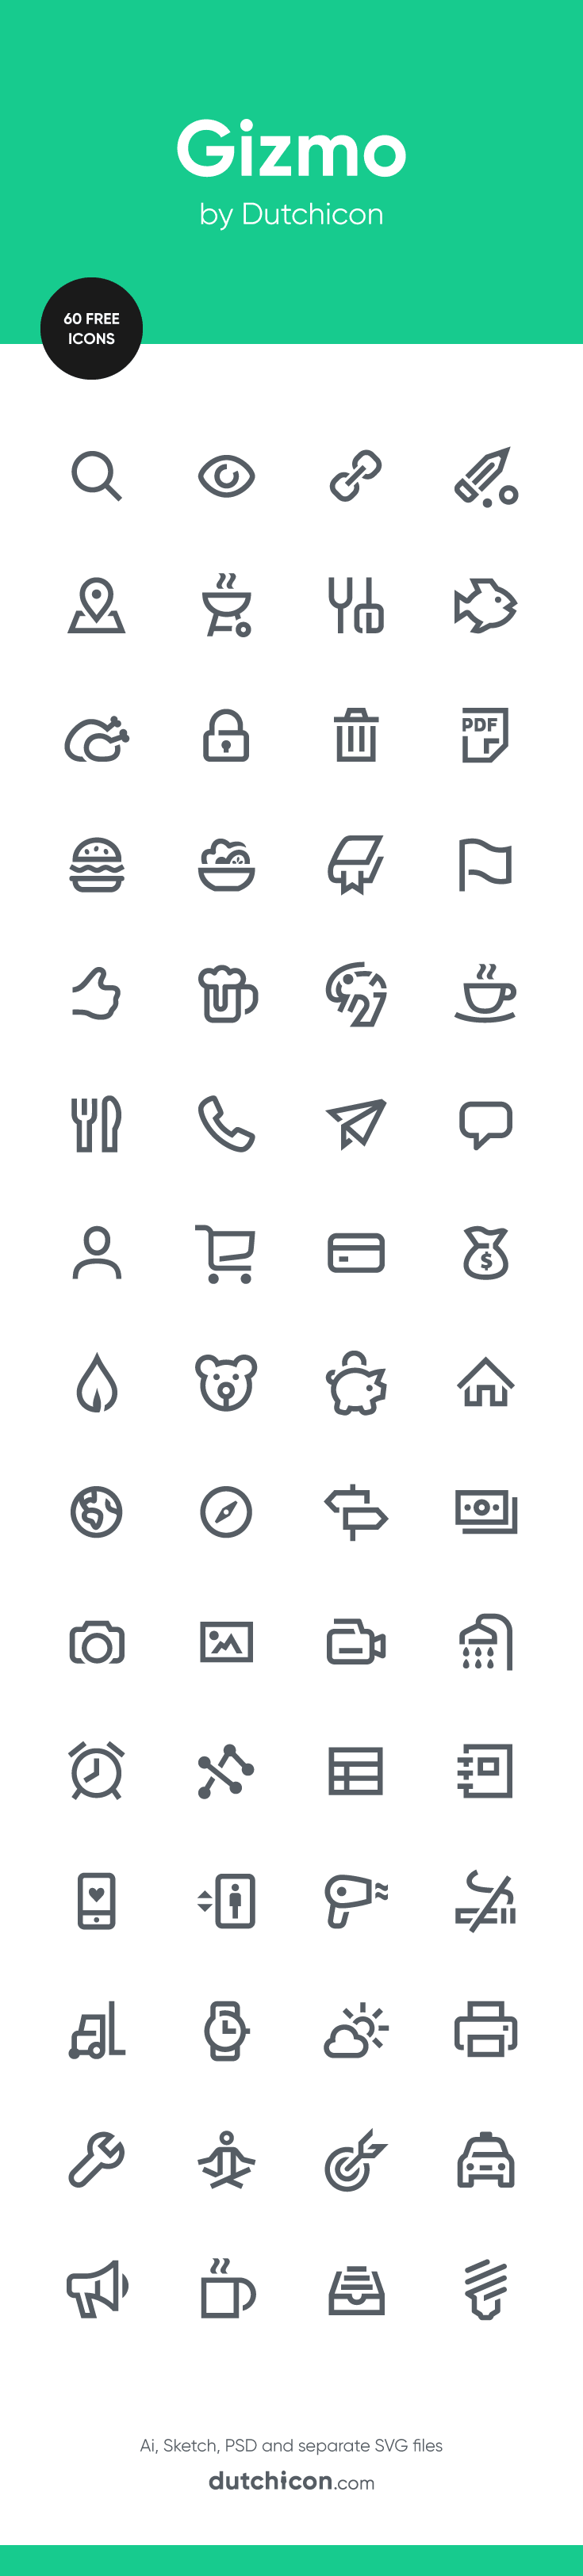 60 FREE icons in Gizmo style available at Dutchicon.com. Direct download: https://dutchicon-store.myshopify.com/cart/30859840402:1?channel=buy_button